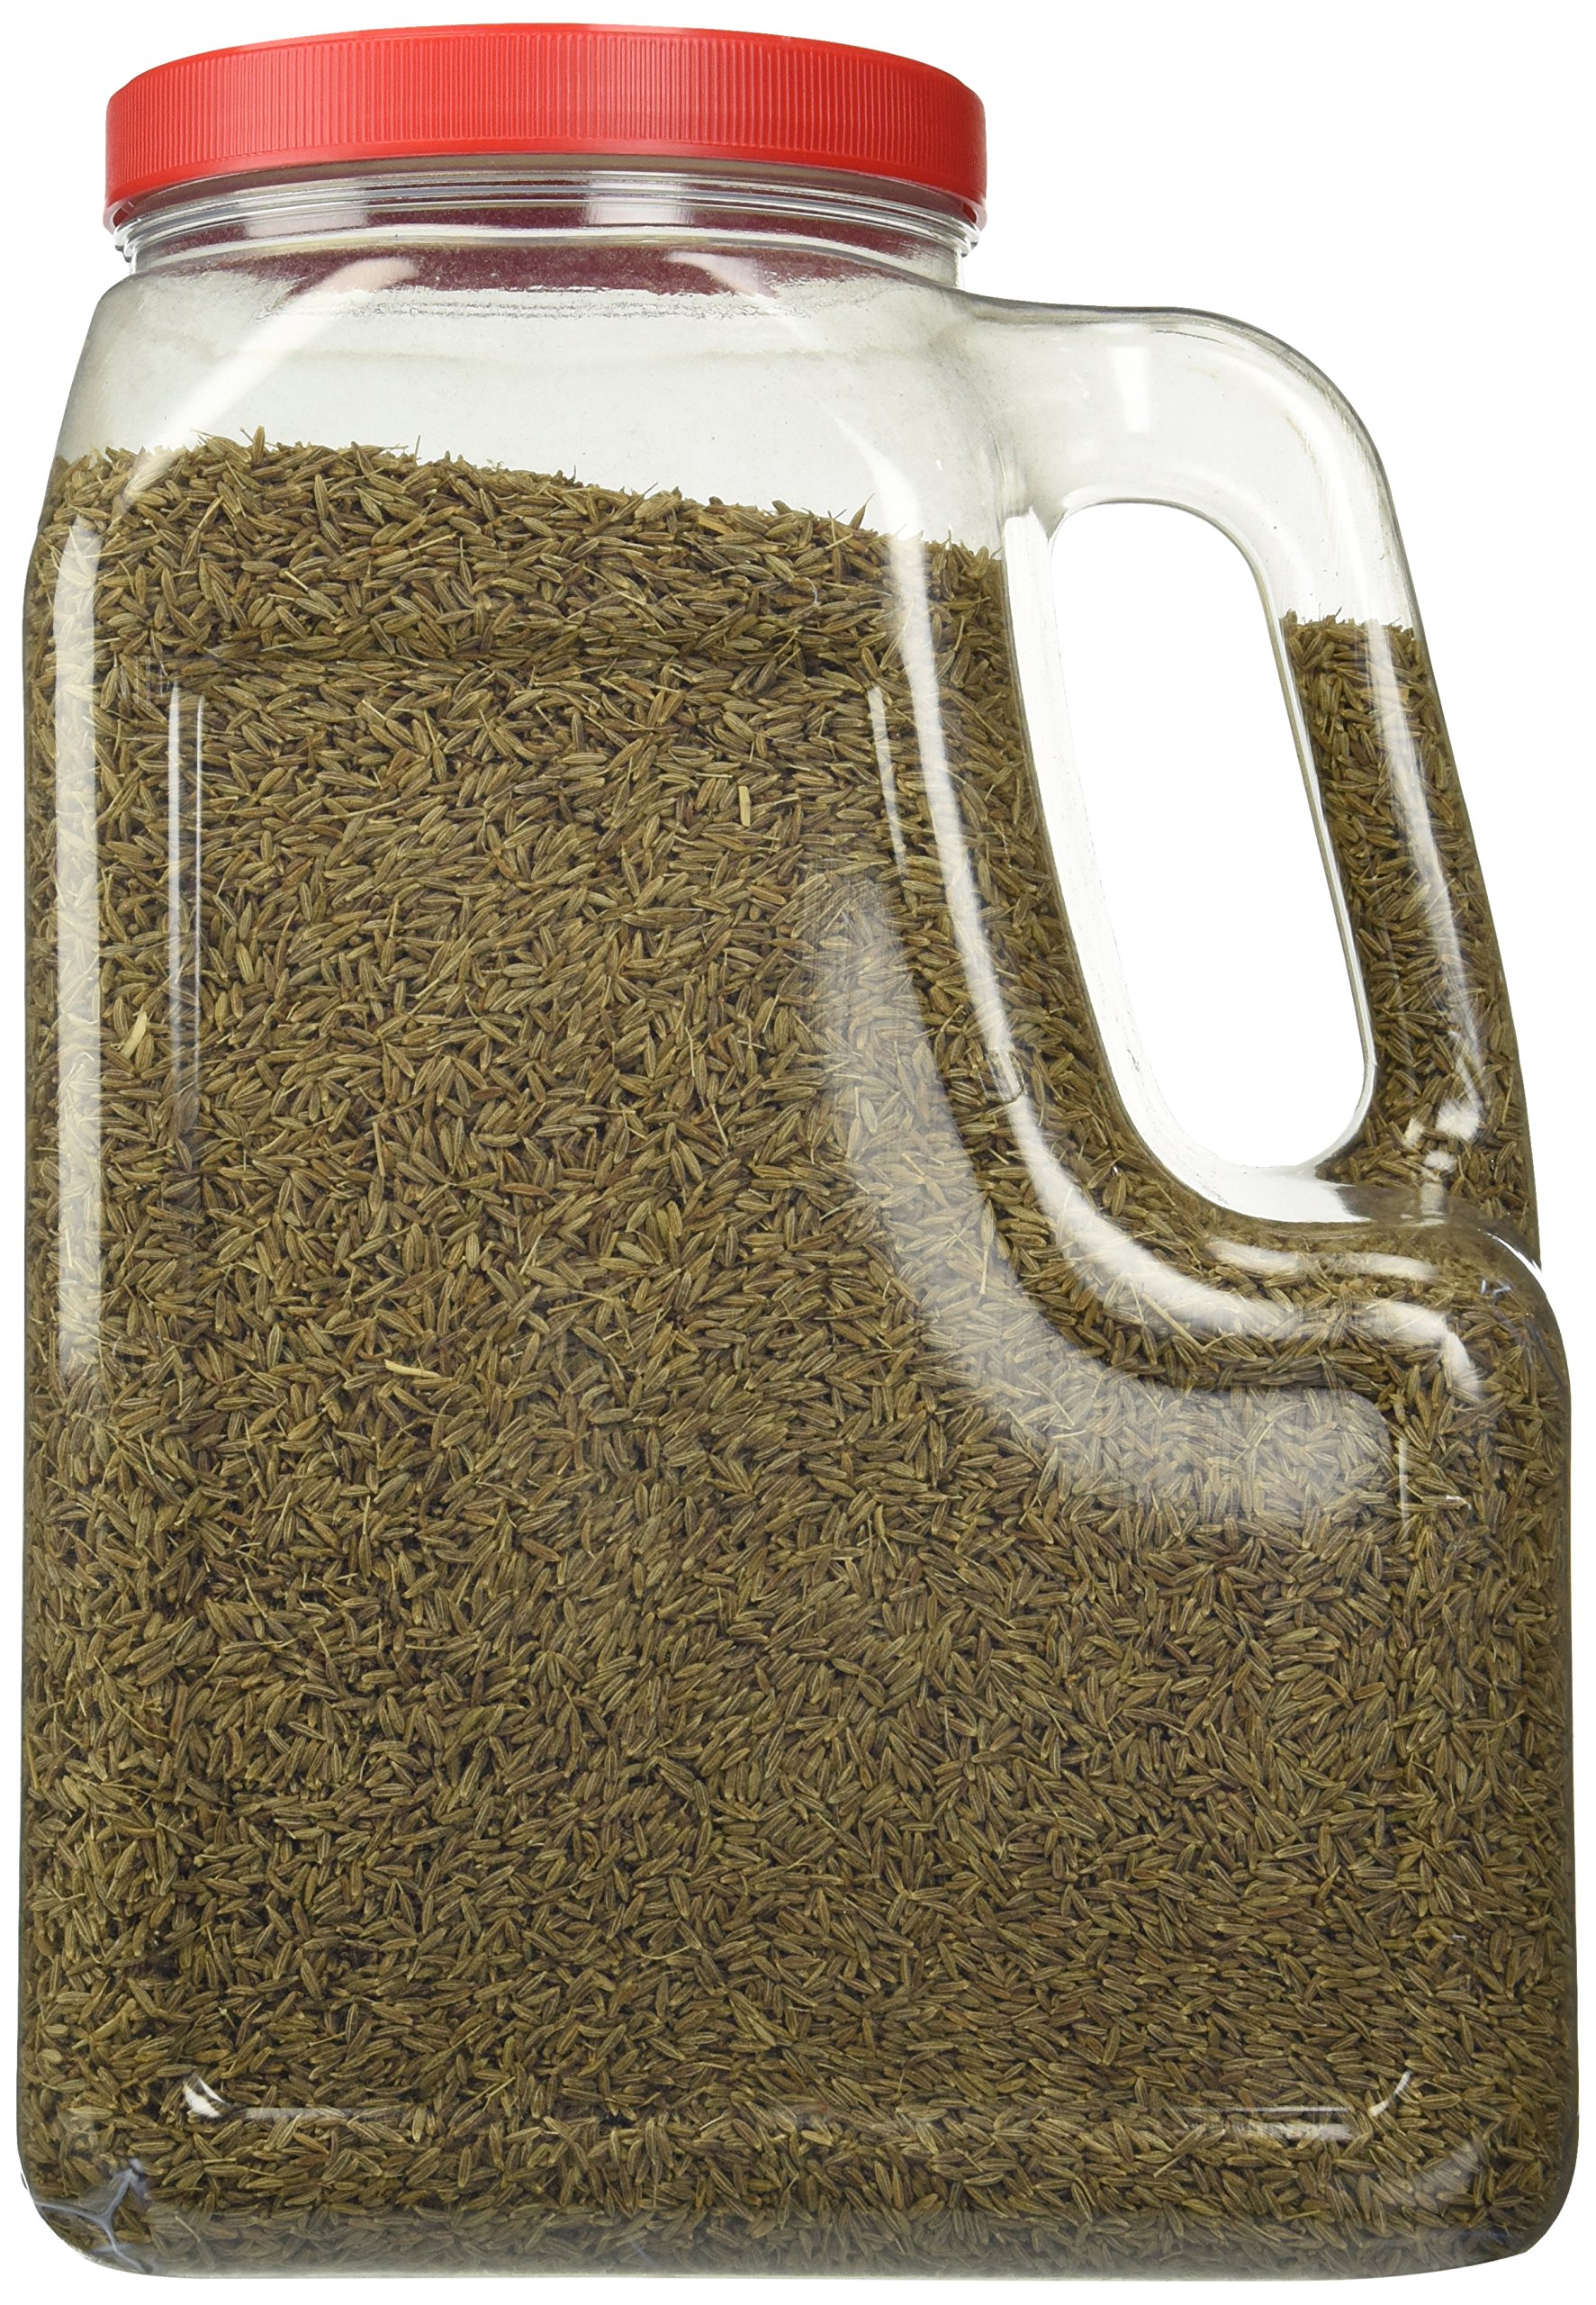 Marshalls Creek Spices Whole Cumin Seed Restaurant Jug, 5 Pound by Marshall's Creek Spices (Image #2)